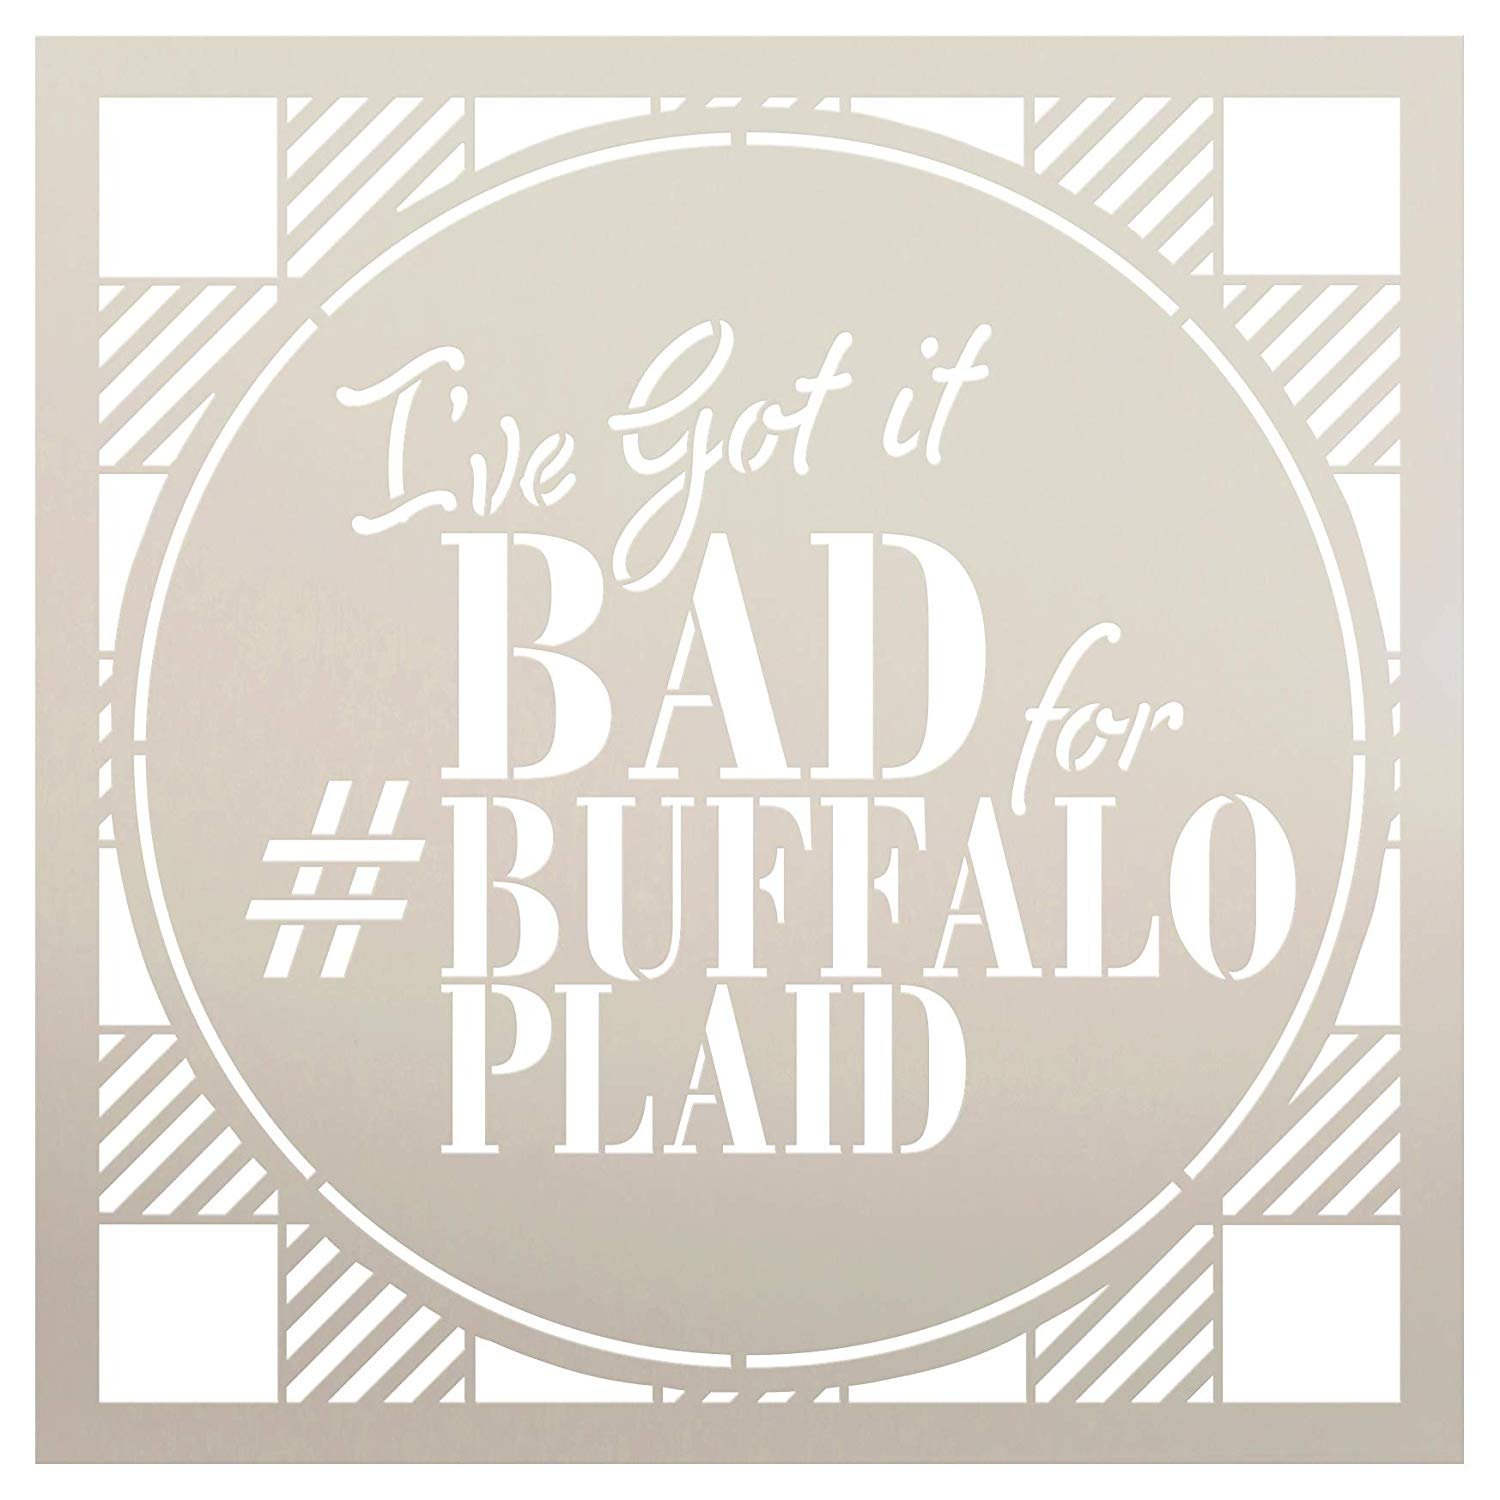 I've Got It Bad for Buffalo Plaid Stencil by StudioR12 | Wood Sign | Word Art Reusable | Family Dining | Painting Chalk Mixed Multi-Media | DIY Home - Choose Size